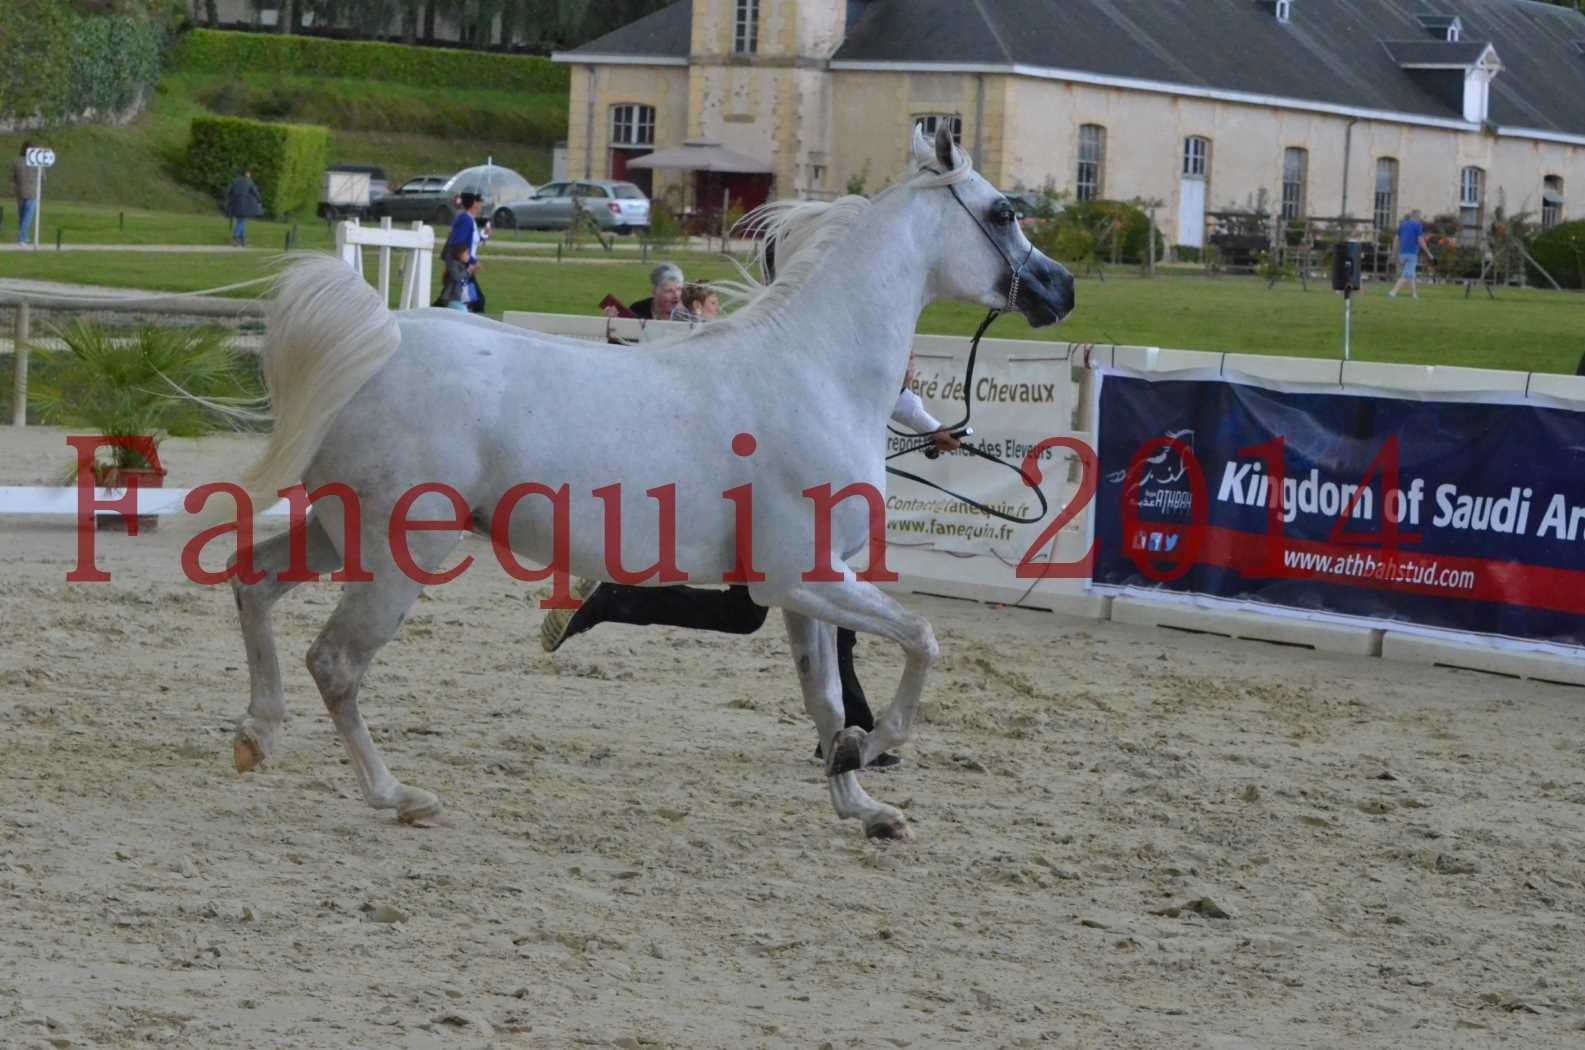 CHAMPIONNAT DE FRANCE 2014 A POMPADOUR - Sélection - FA STARLIGHT - 08